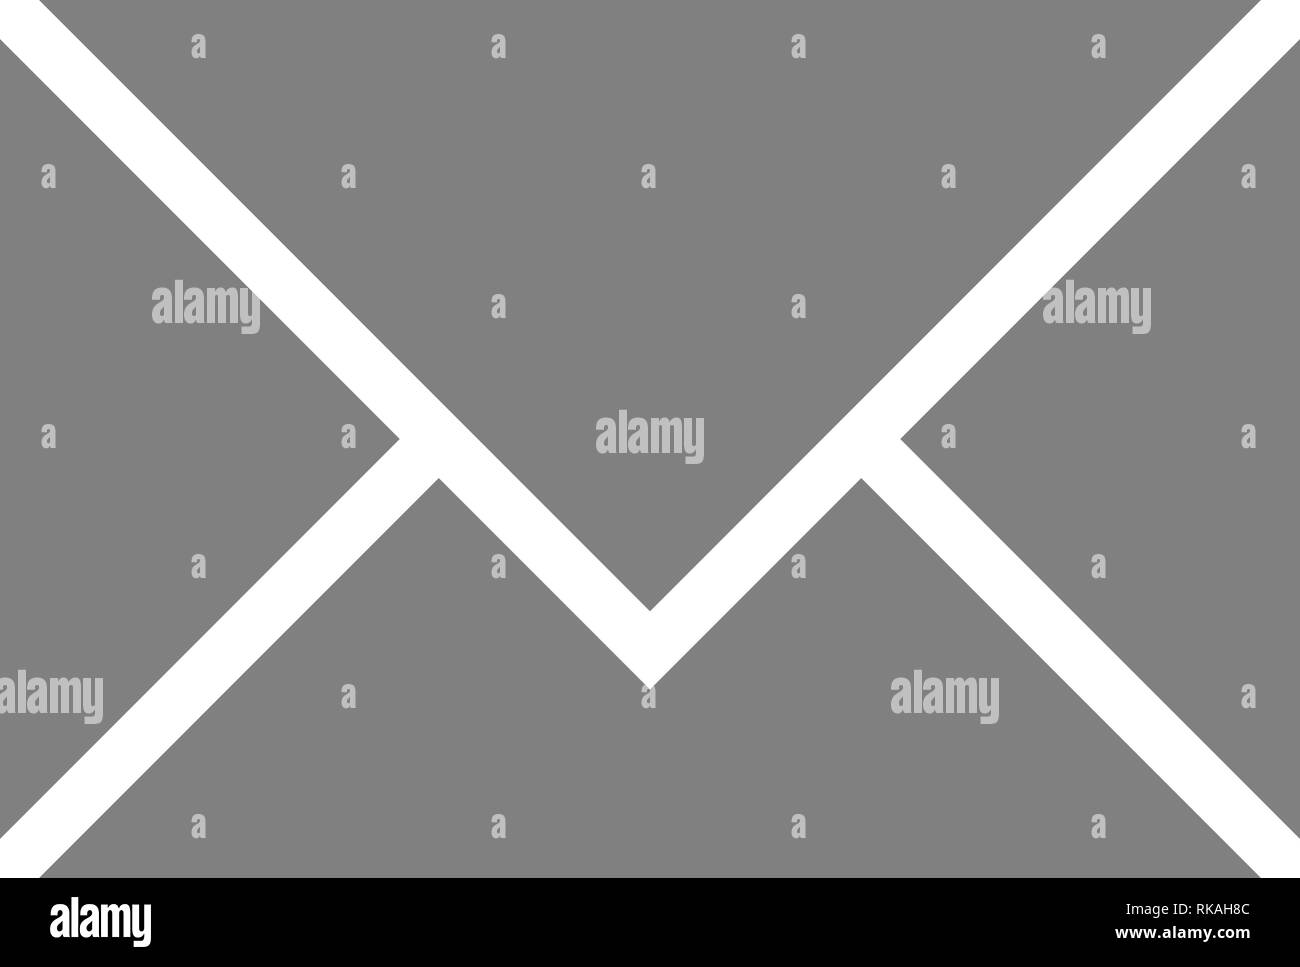 Mail symbol icon - gray simple, isolated - vector illustration - Stock Image